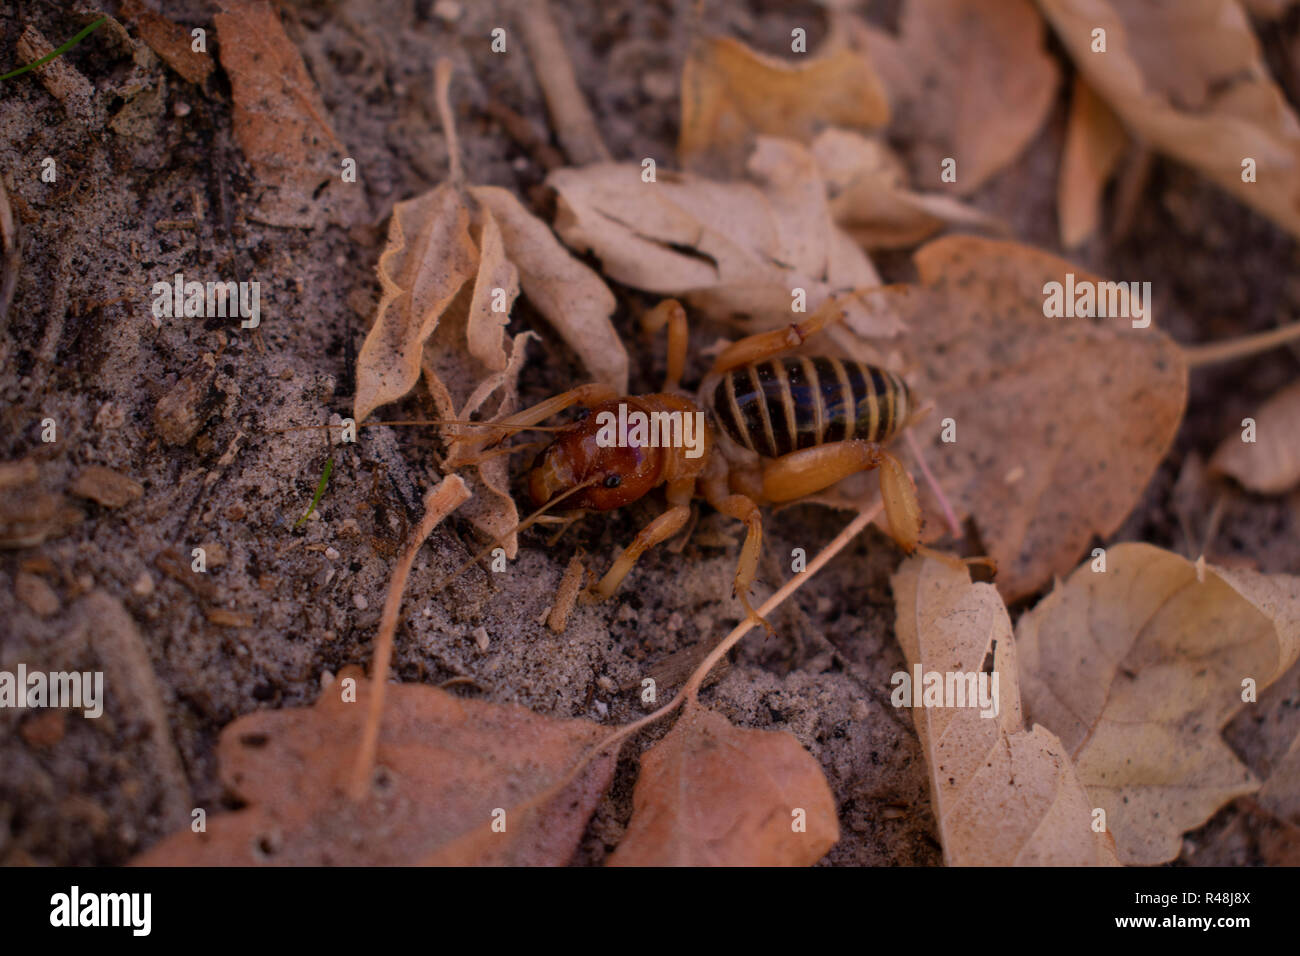 A rare species of insect known as a Jerusalem Cricket, found in the western United States and native to the rockies Found in Dinosaur National Monument - Stock Image